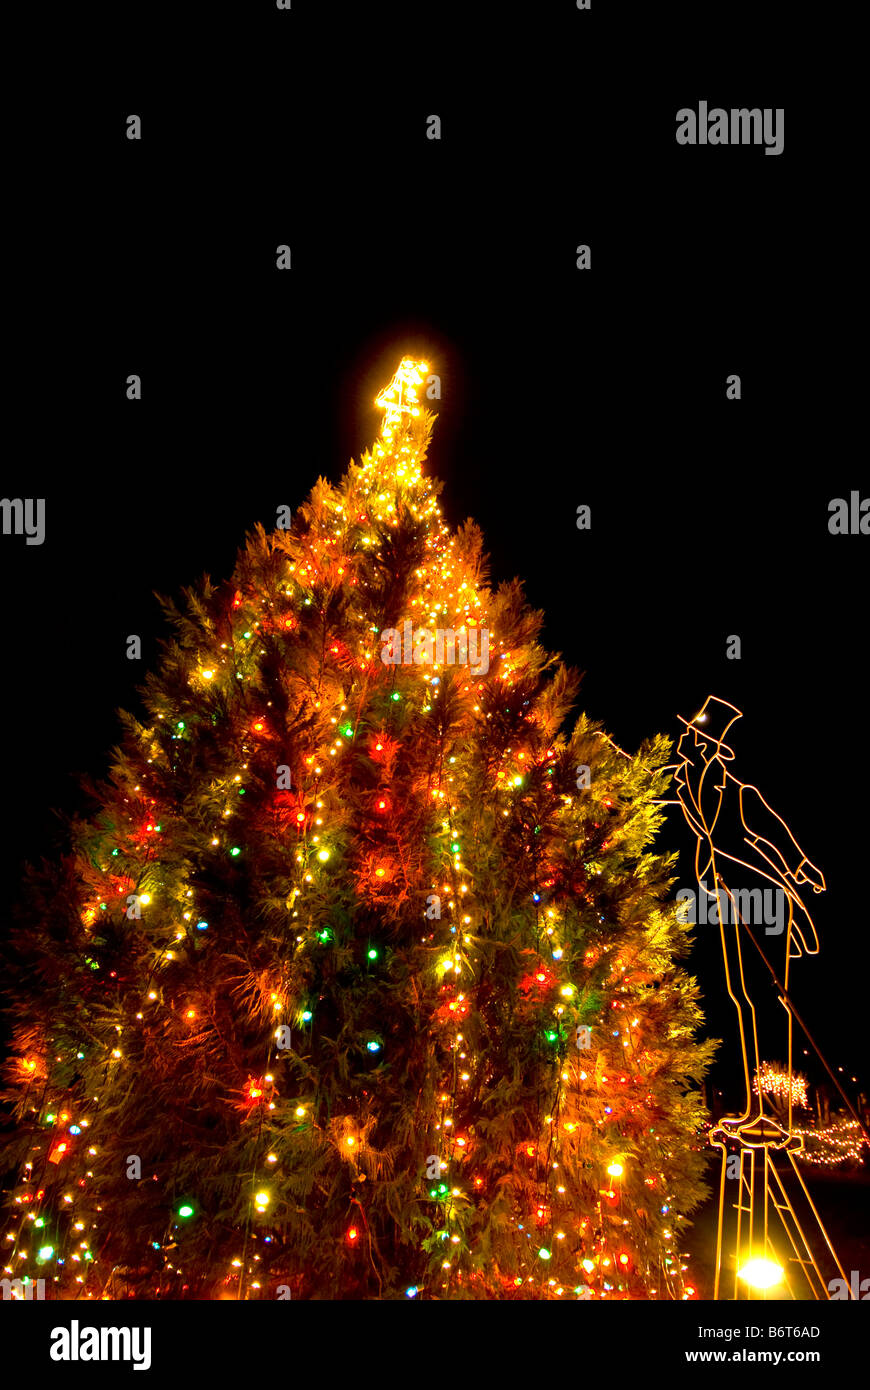 Christmas Tree Lights Stock Photos & Christmas Tree Lights Stock ...